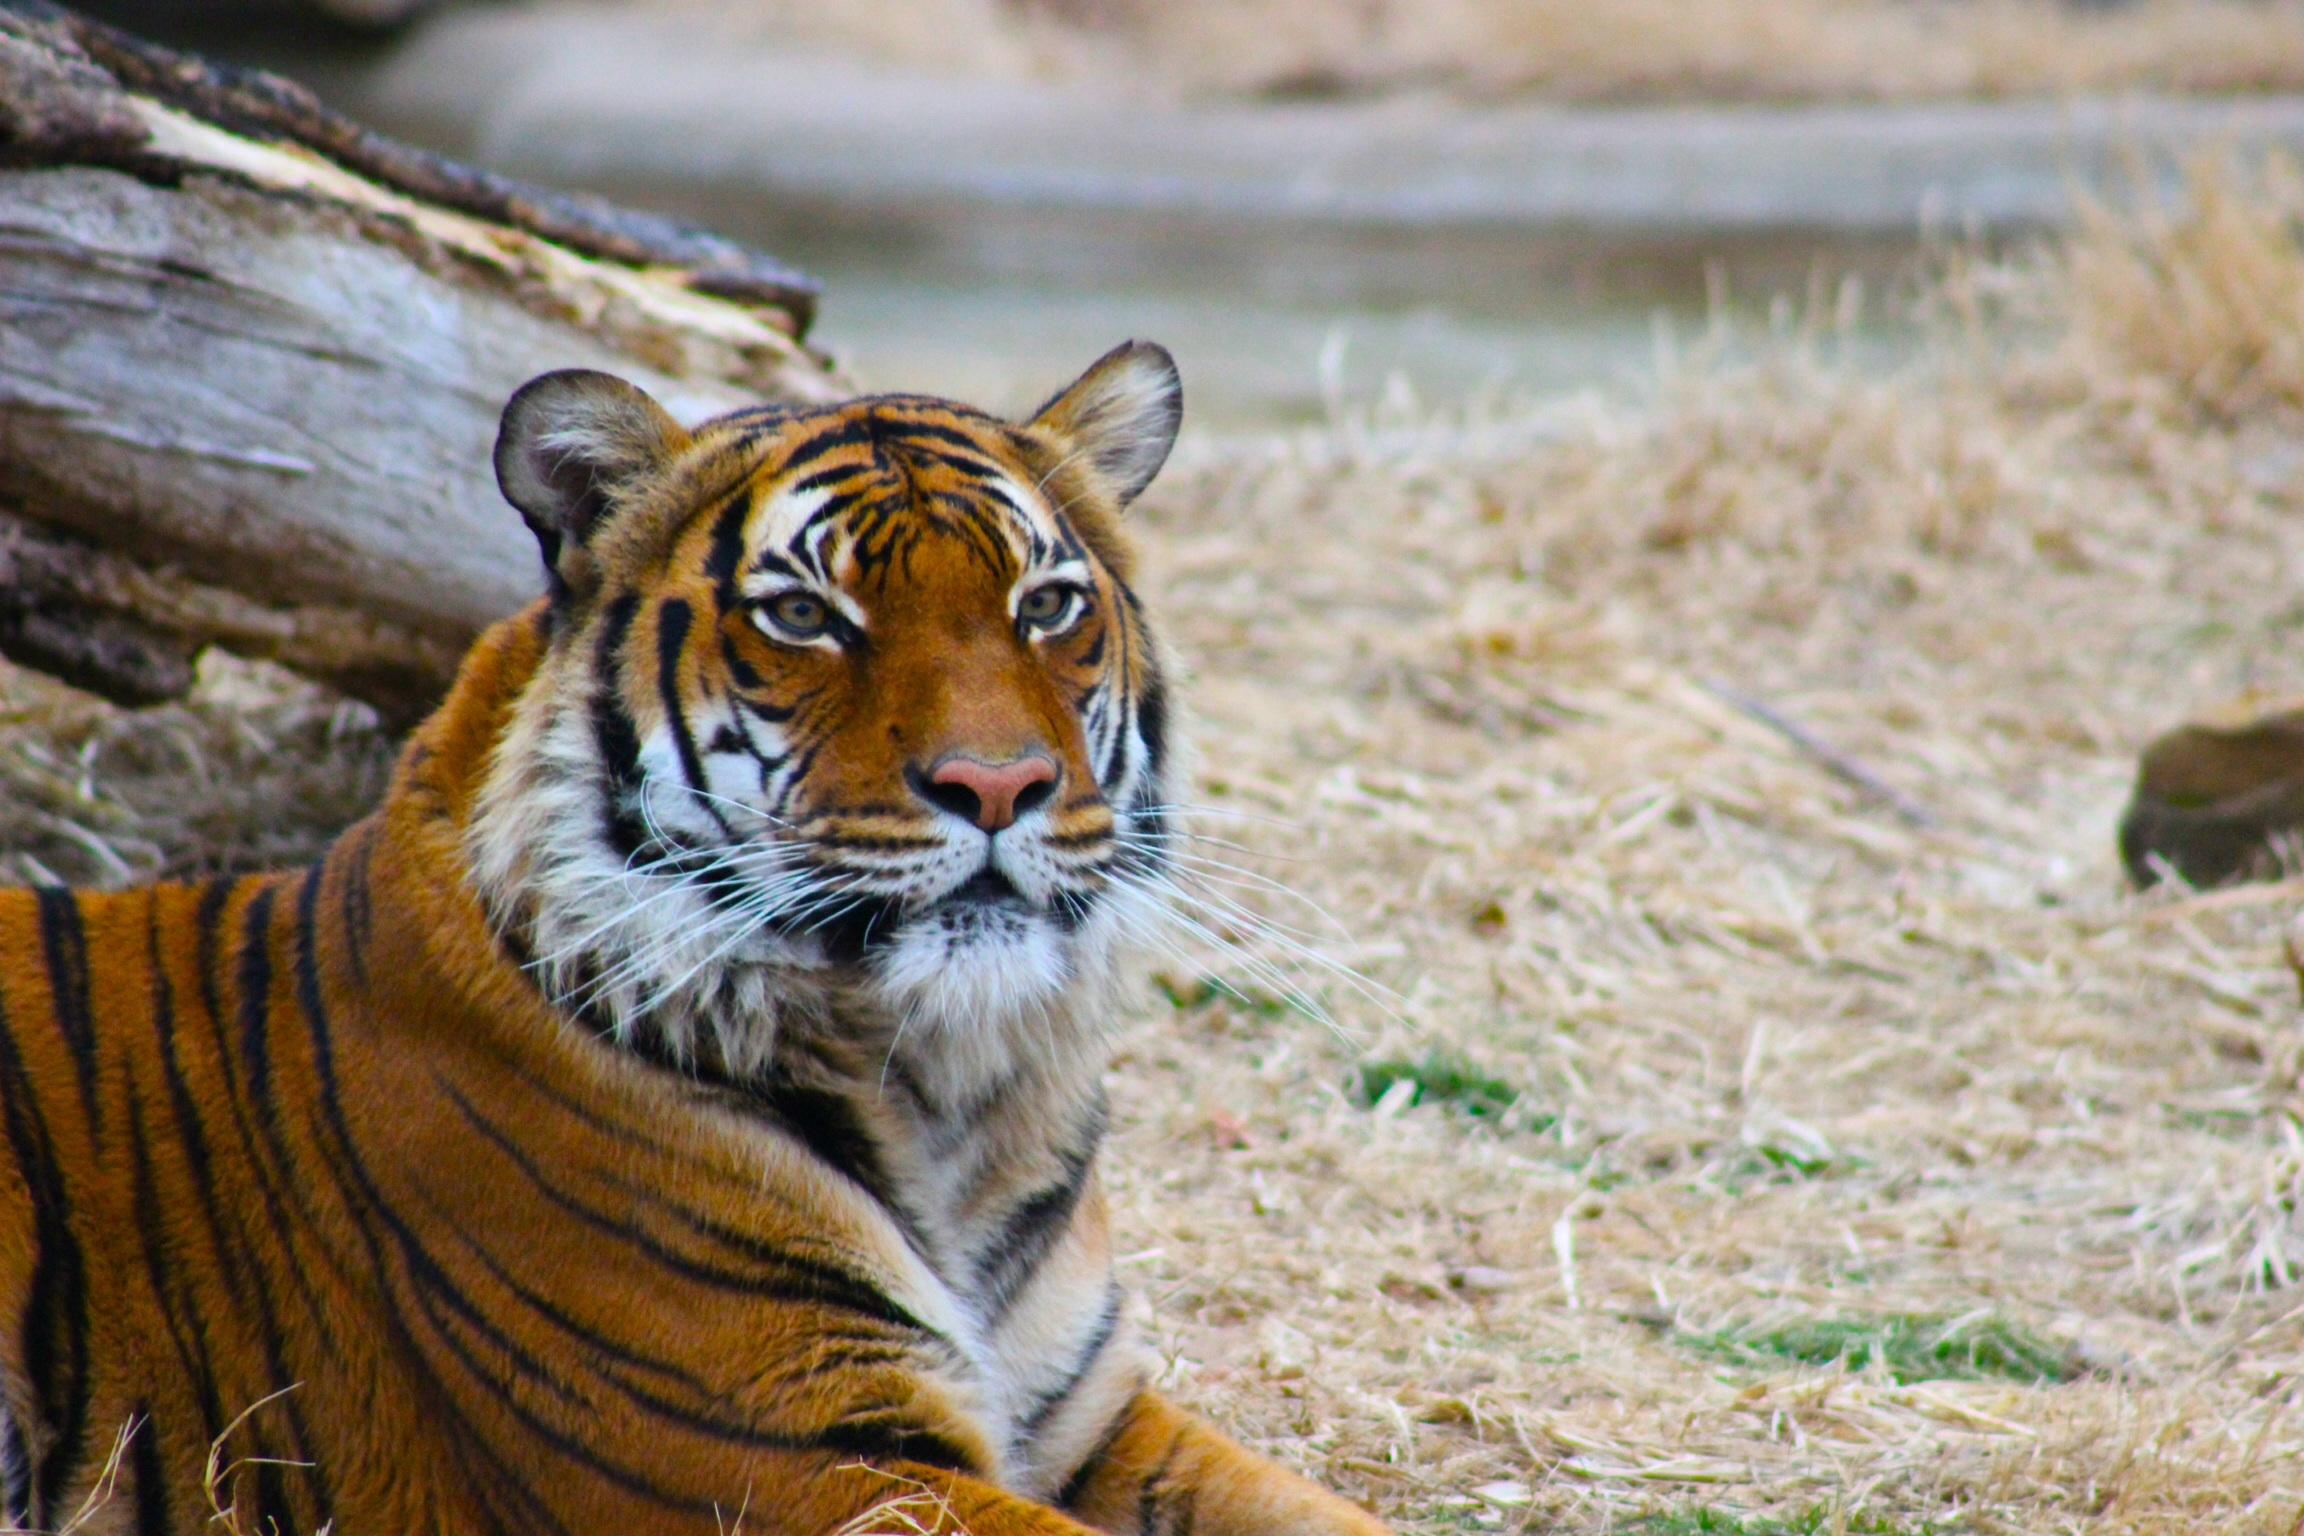 Malayan tiger at Tulsa Zoo